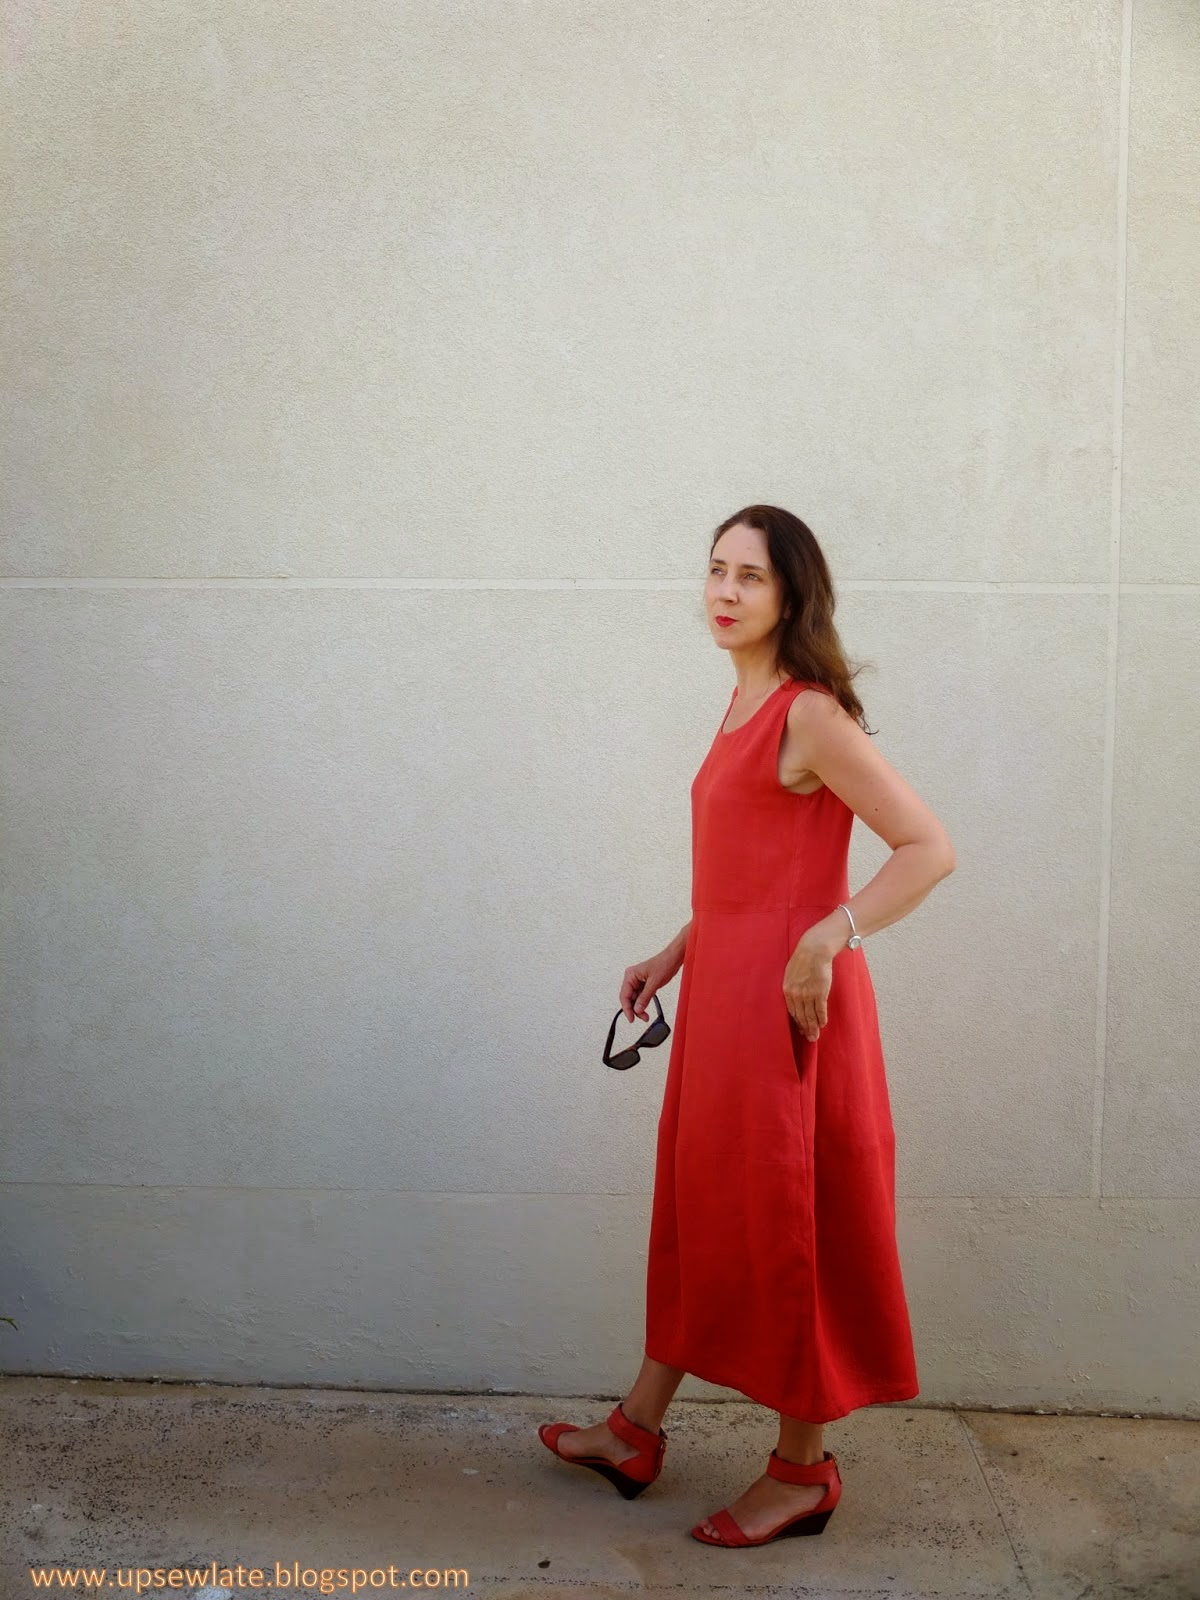 Up sew lates coral linen eva dress sew tessuti blog as always its such a thrill for us to see our patterns made up thanks again gabrielle and for letting us share these great images too what a talented jeuxipadfo Gallery